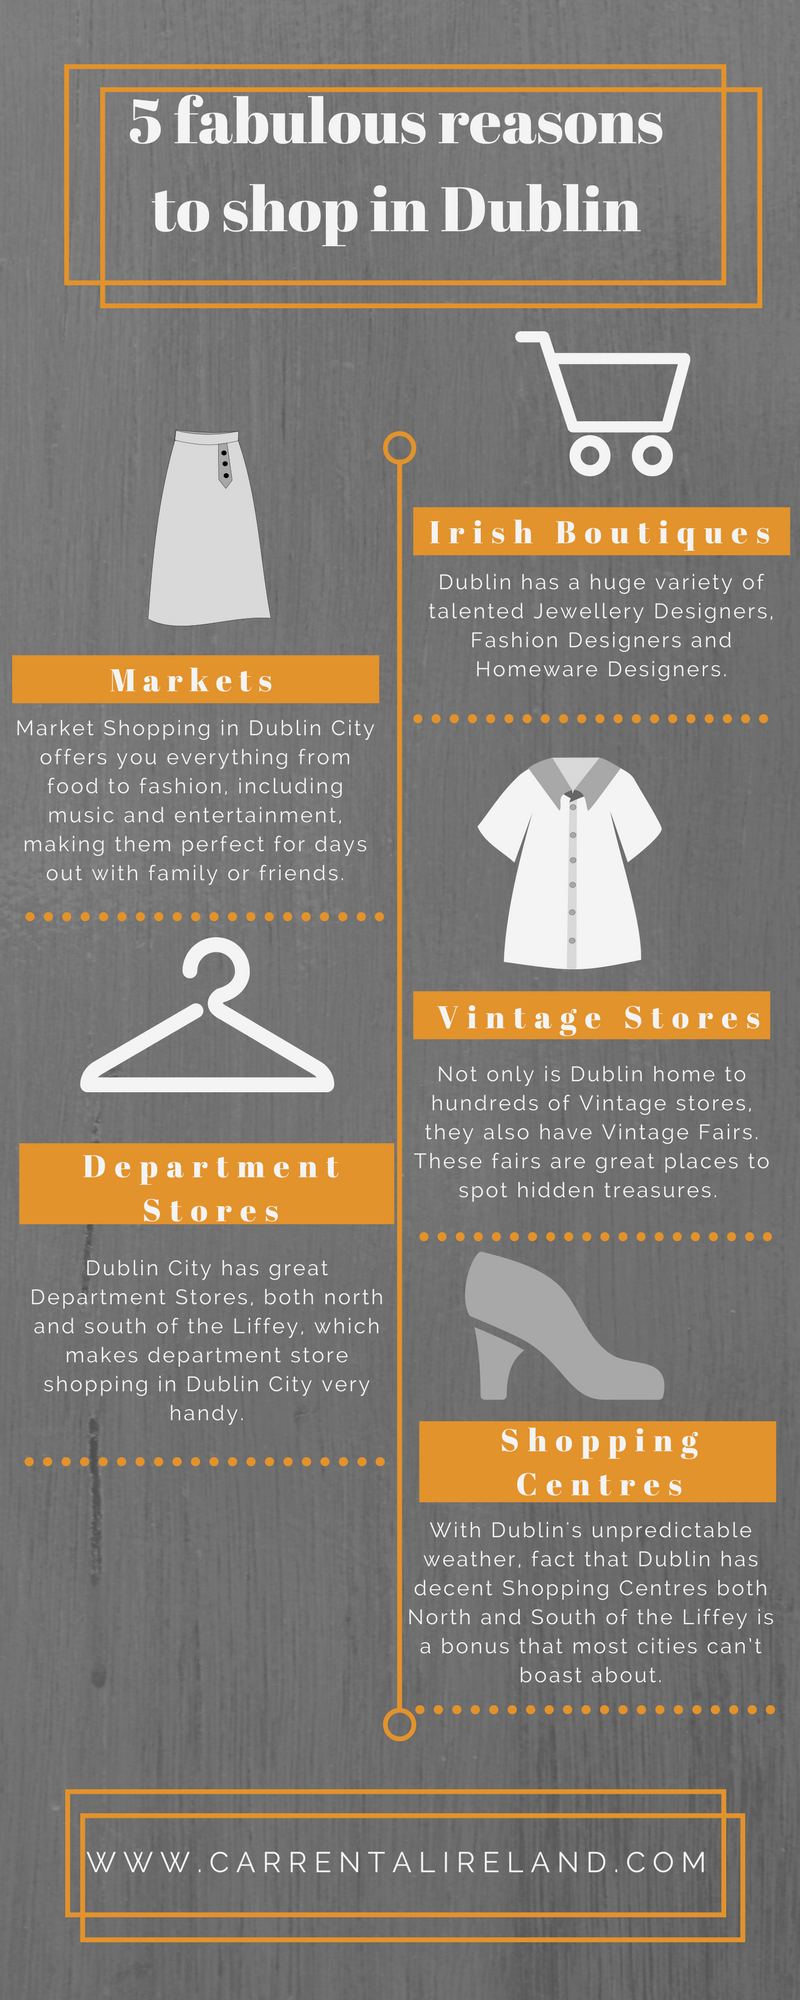 Reasons to Shop in Dulin infographic